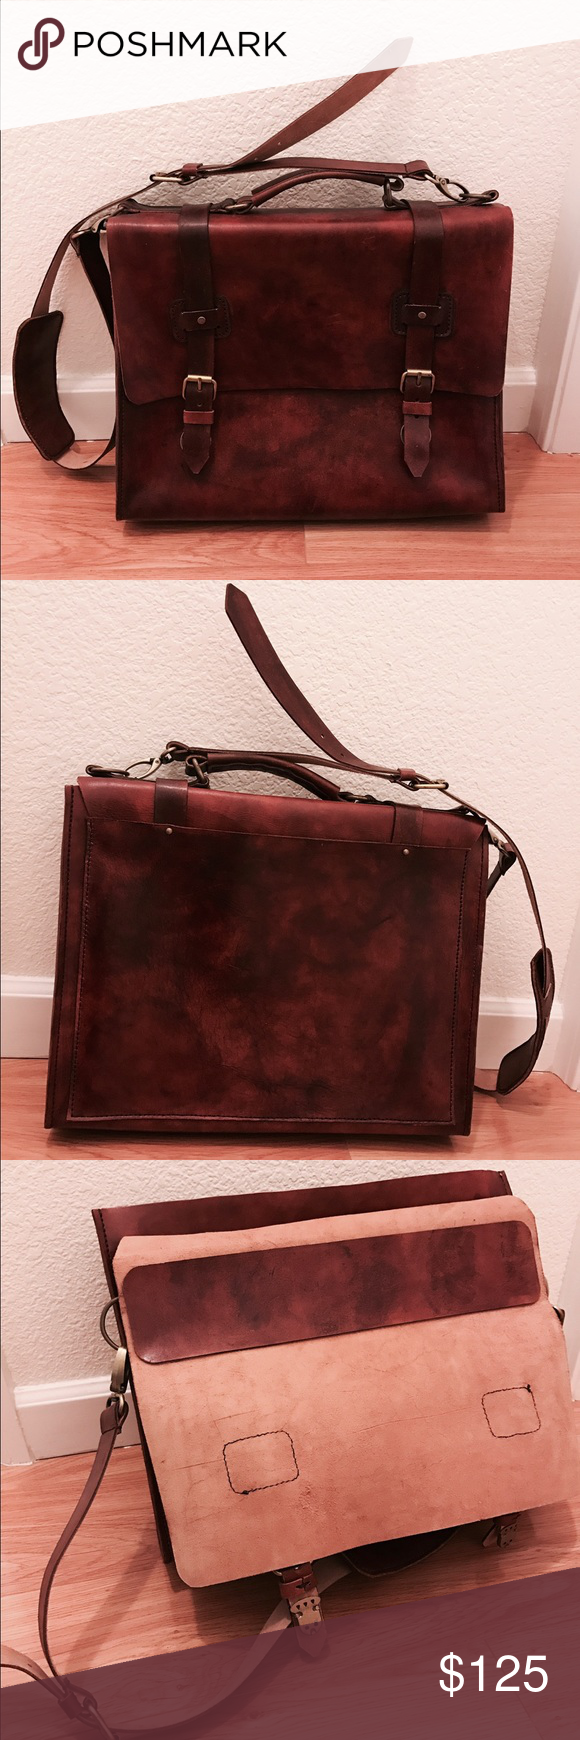 """Vintage Leather Bag Brand new. Brown color. Firm frame. Can carry laptop from 13 - 15"""" Vintage Bags Messenger Bags"""